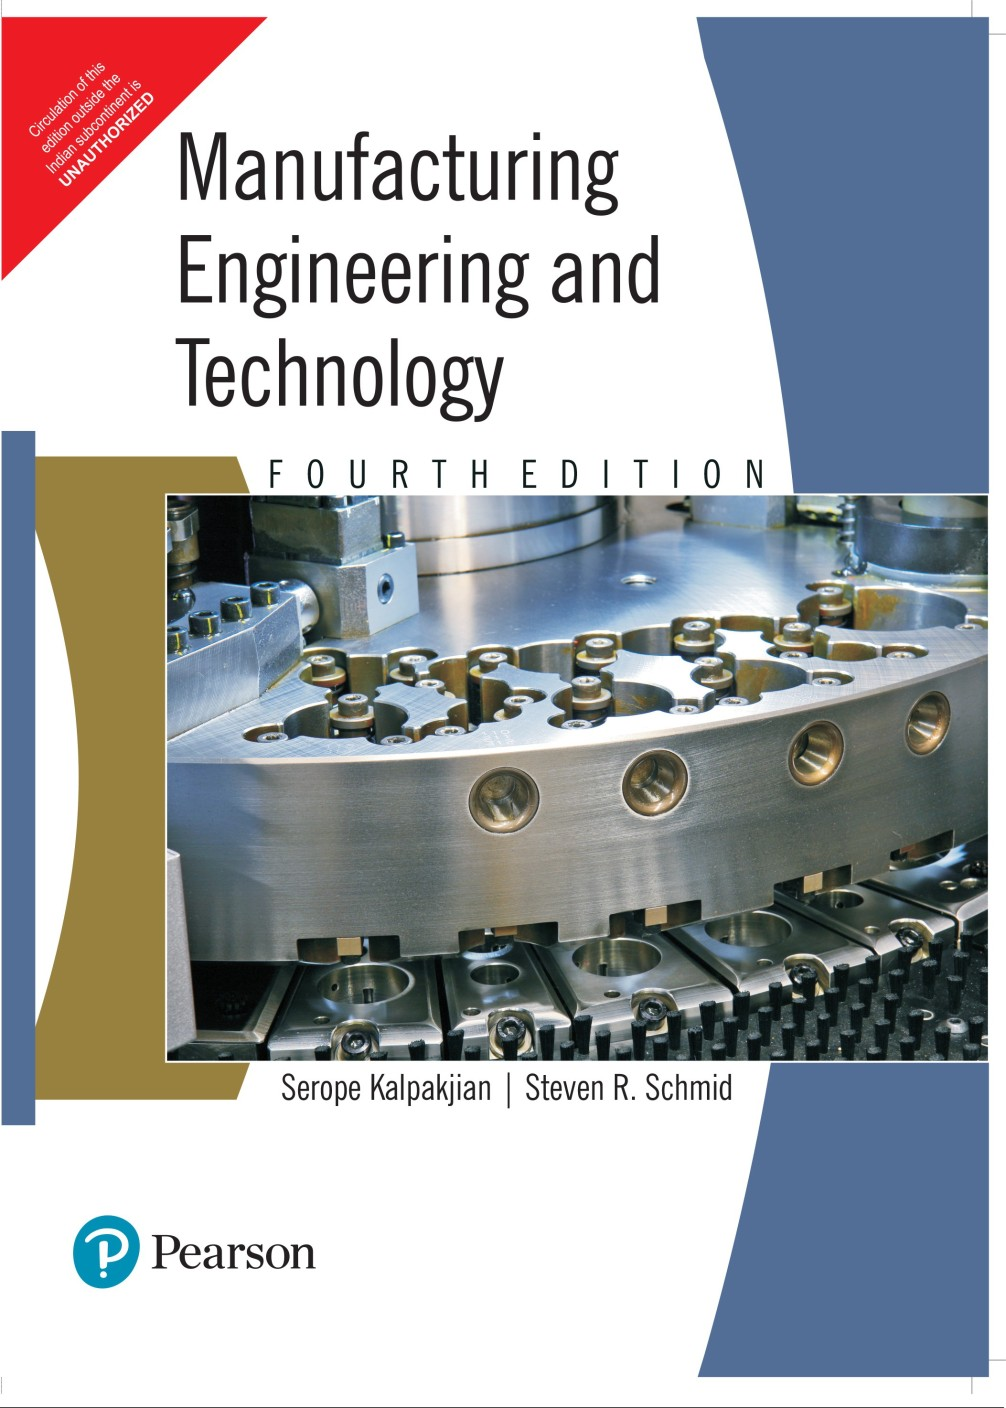 pn rao manufacturing technology volume 1 pdf free download